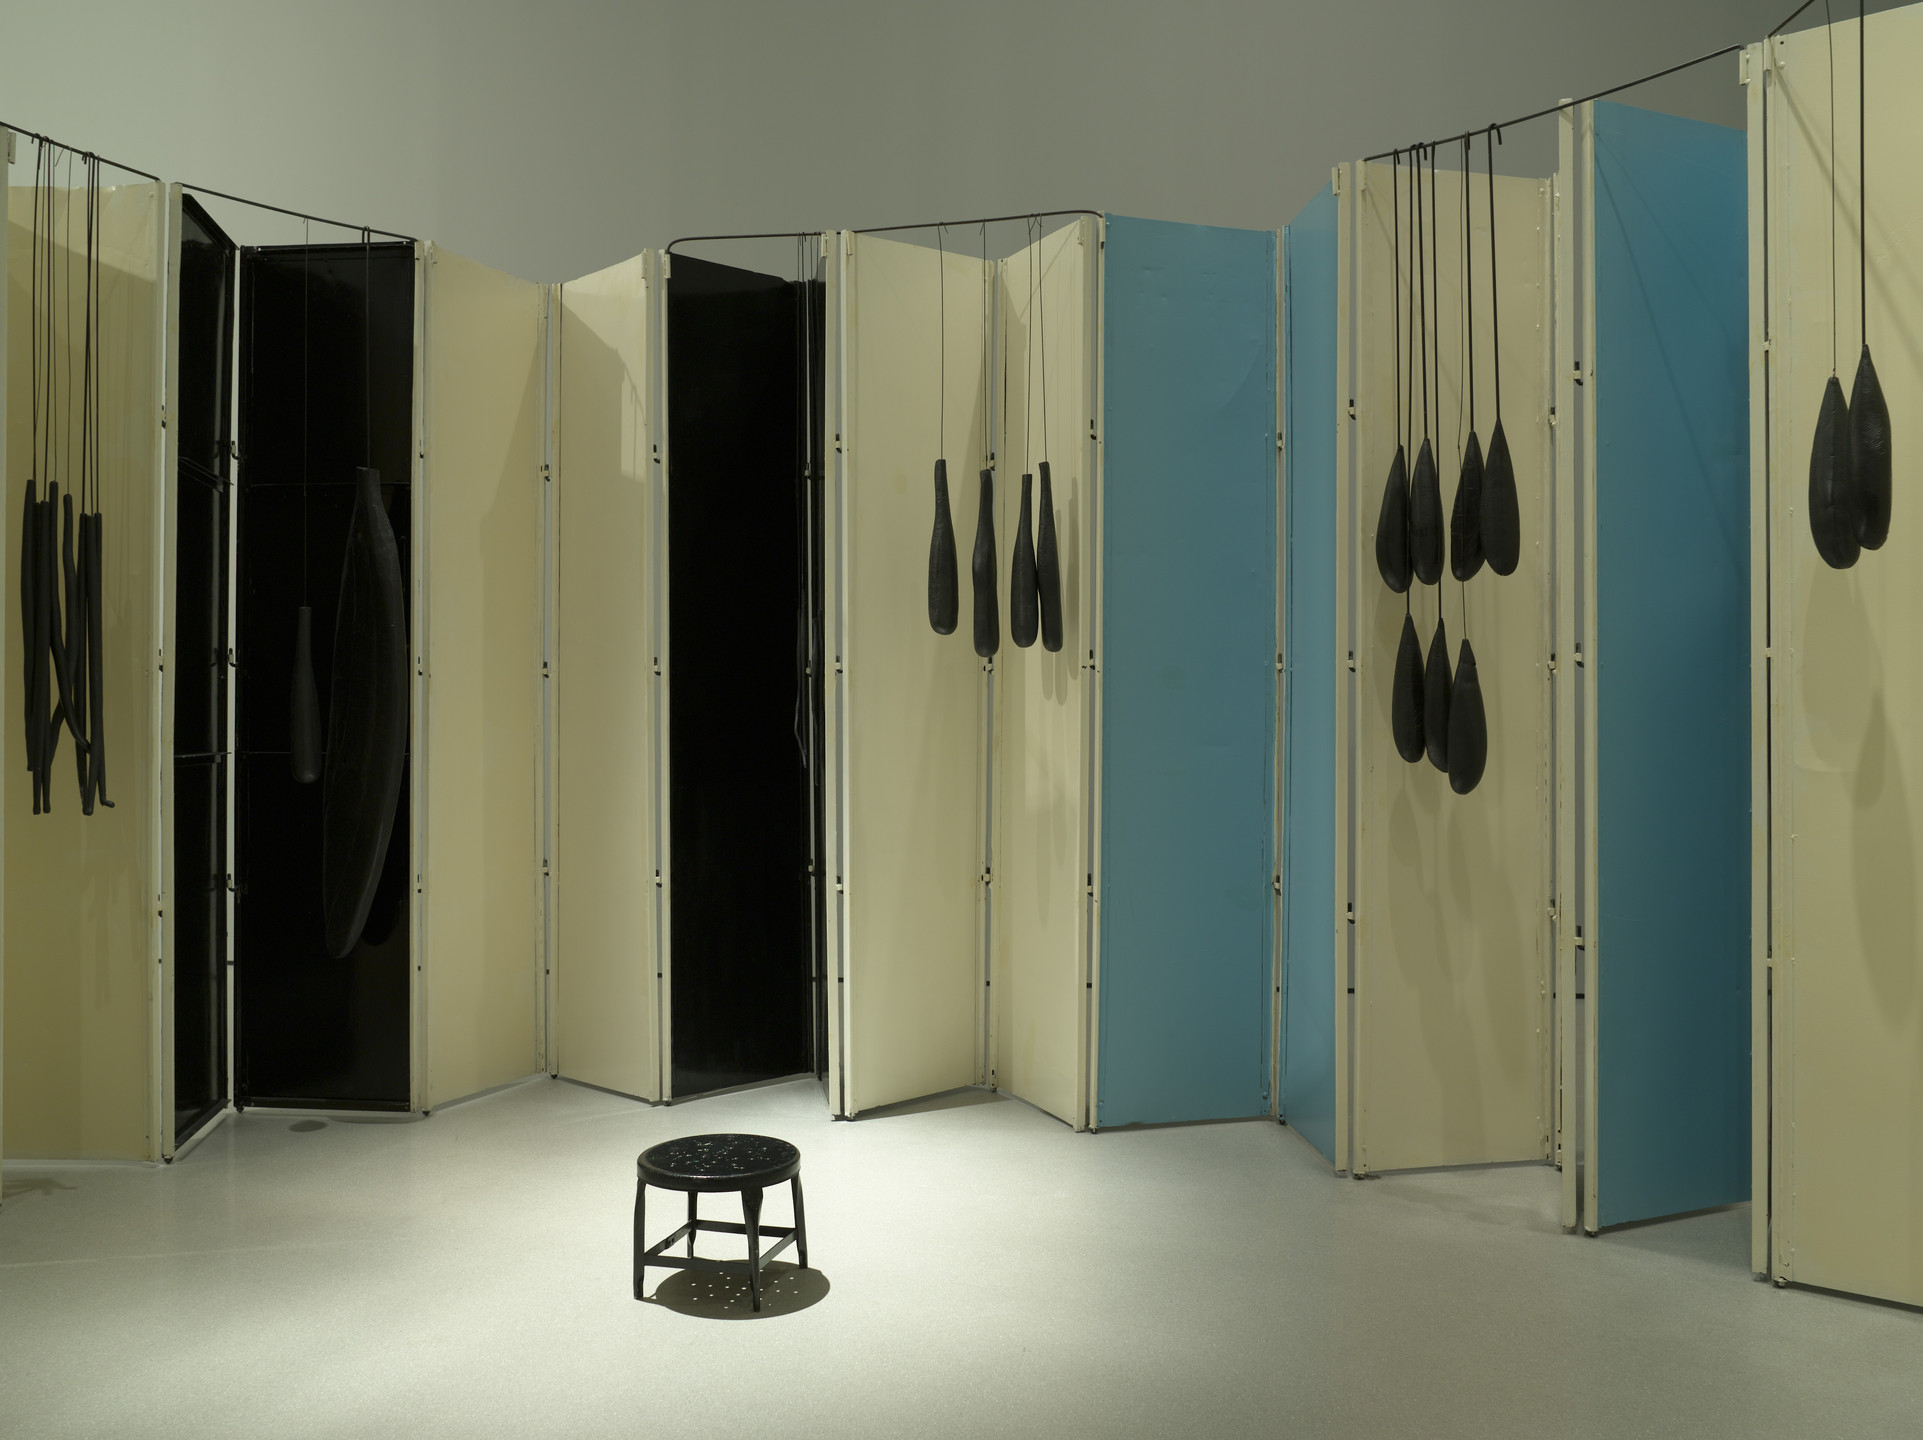 Louise Bourgeois. Articulated Lair. 1986